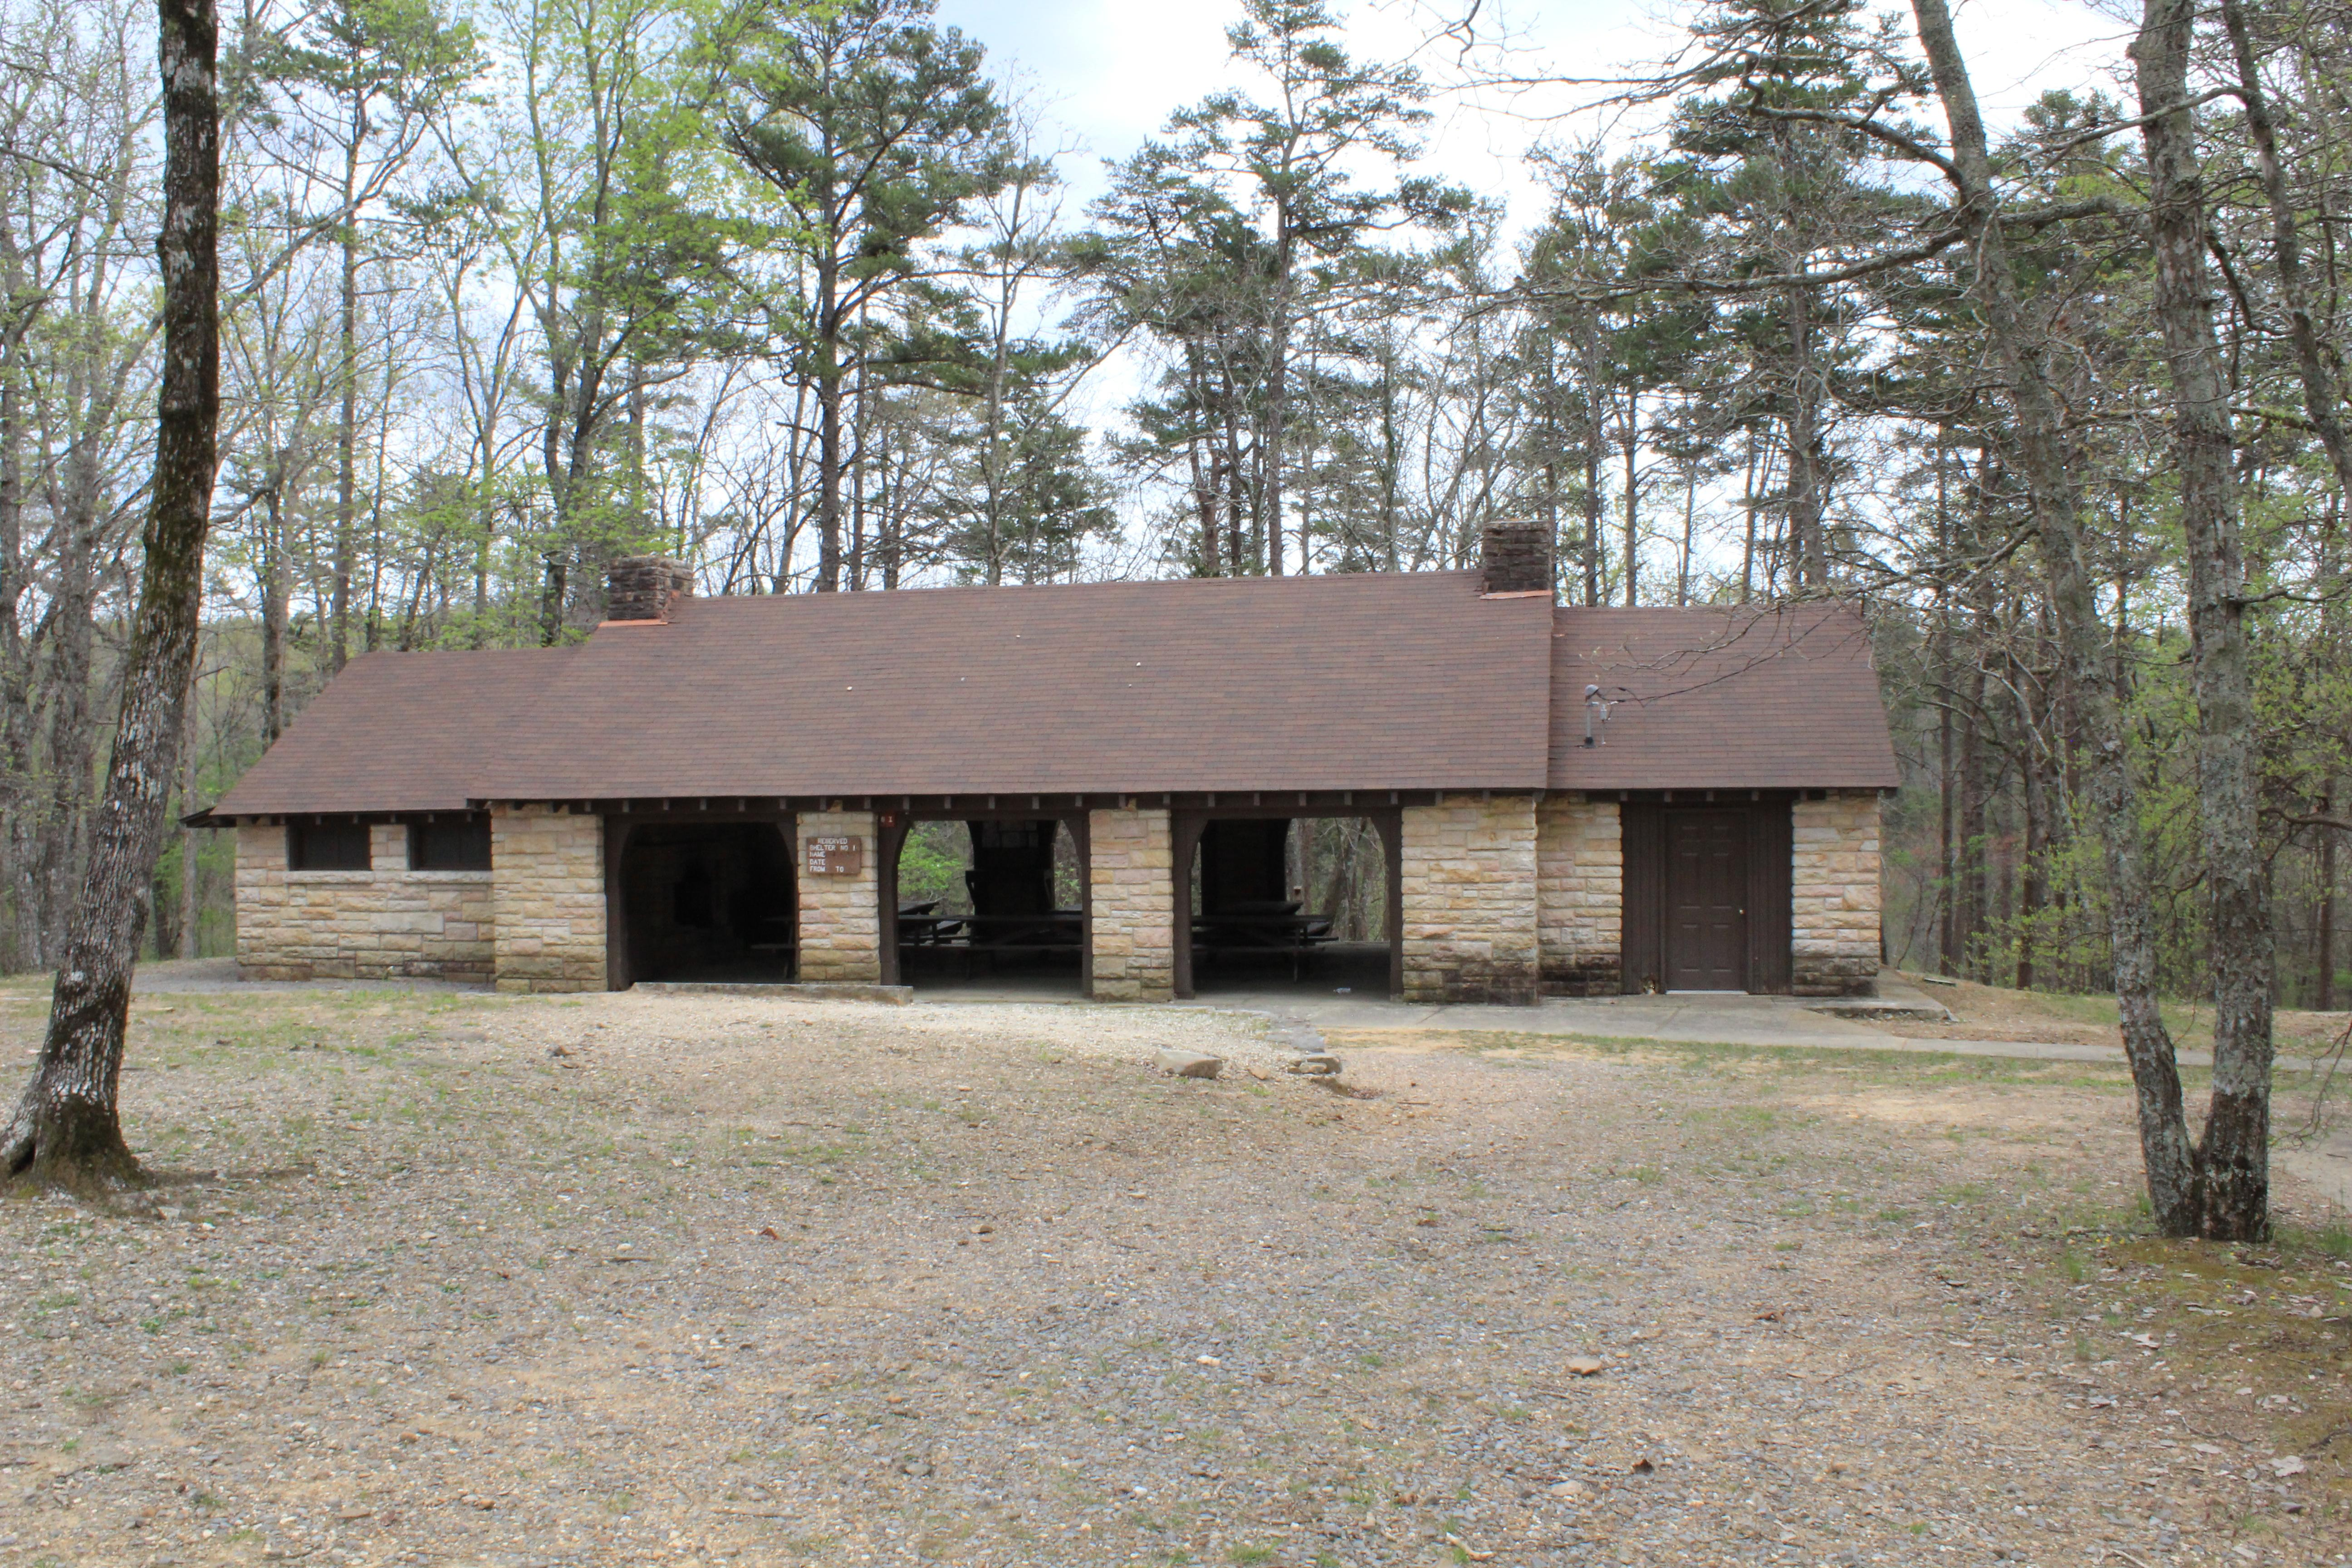 Picnic Area Shelter #1